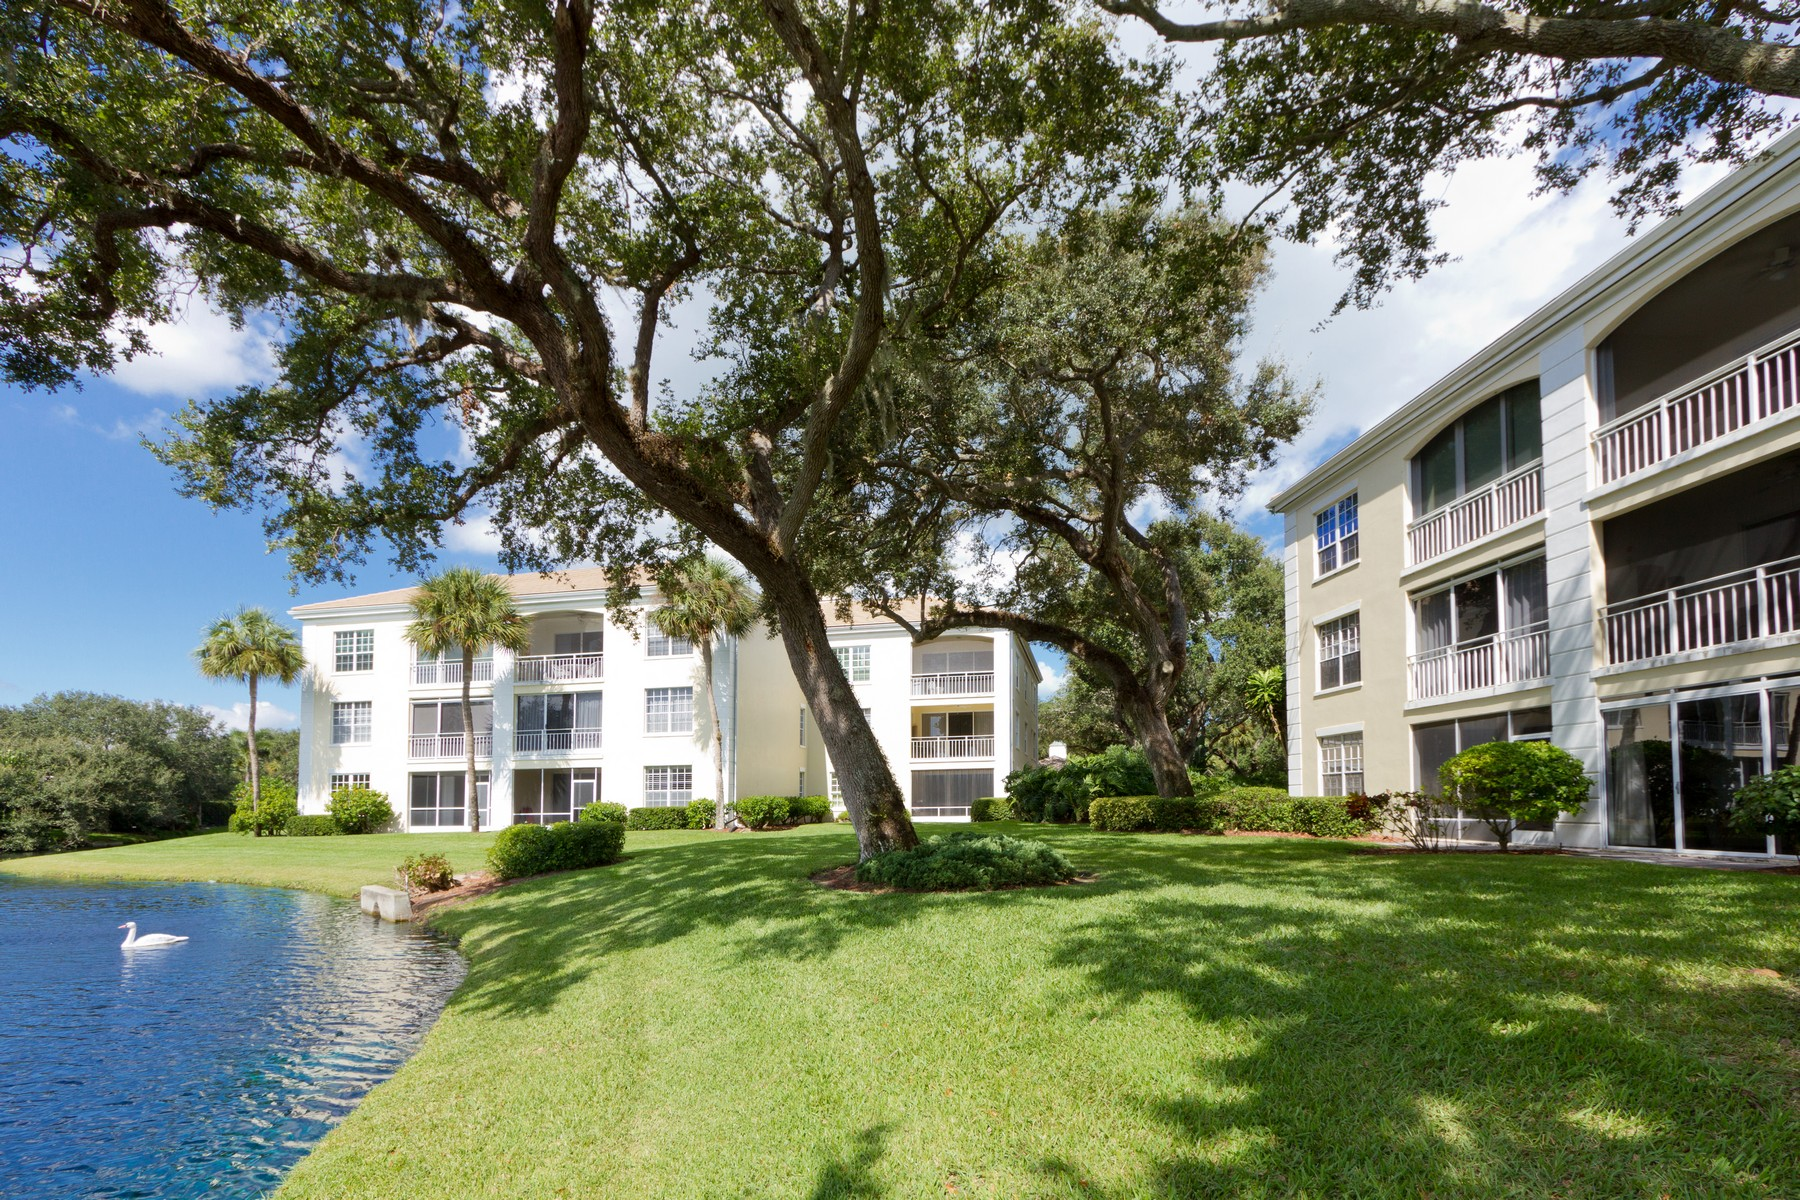 Condominiums for Sale at Penthouse Unit with Peaceful Lake Views 200 Sable Oaks Lane #304 Indian River Shores, Florida 32963 United States